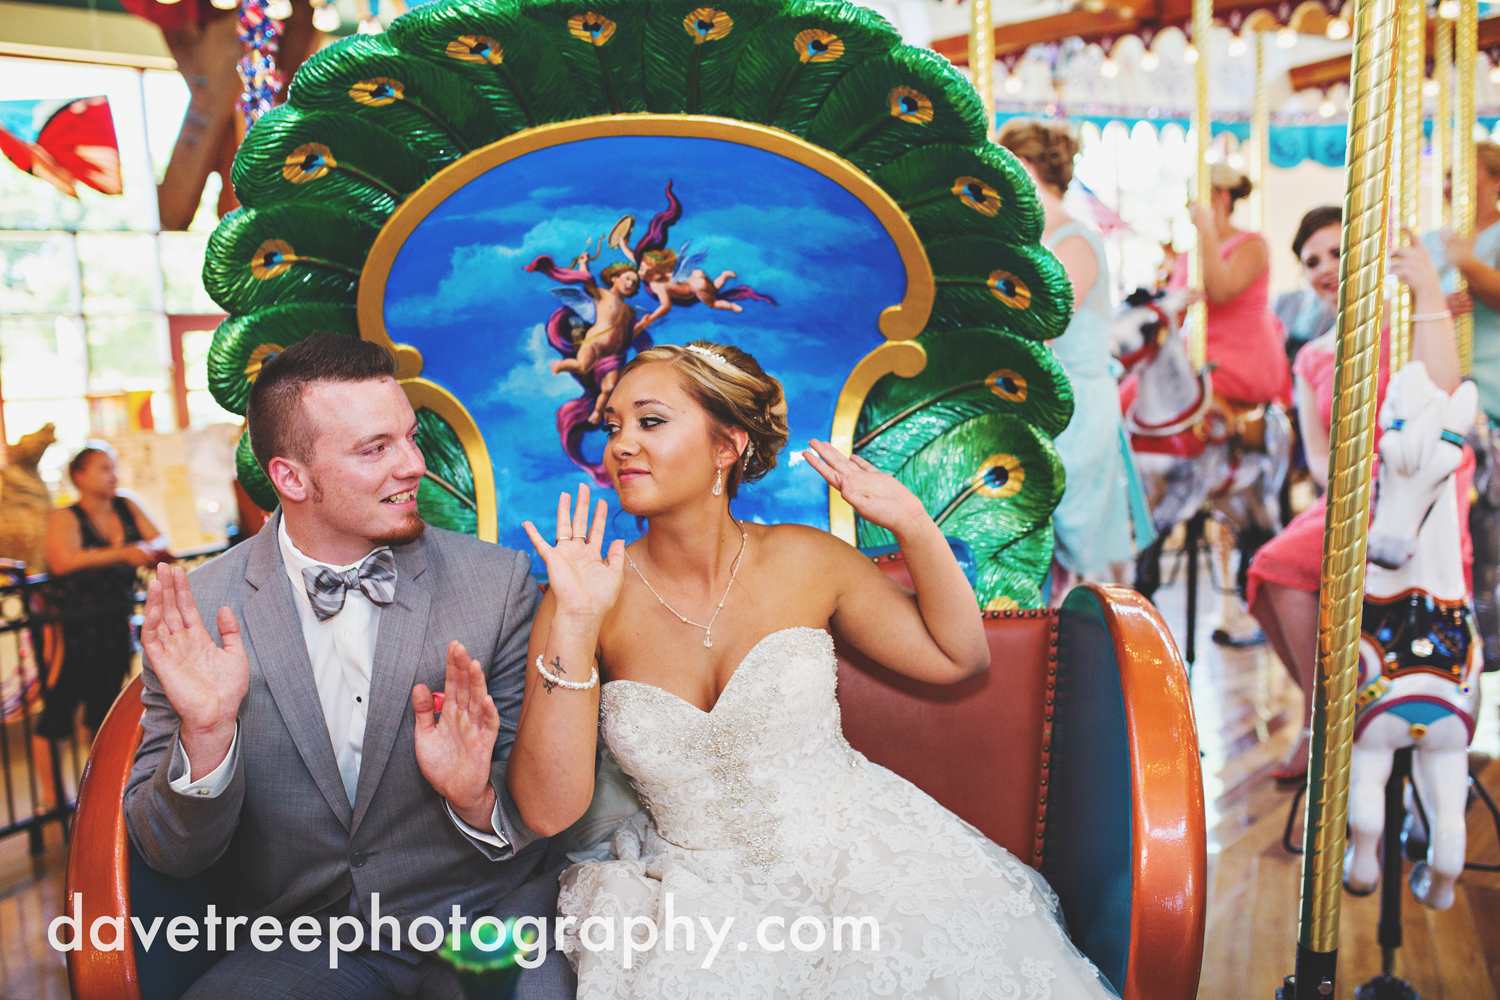 veranda_wedding_photographer_st_joseph_wedding_34.jpg